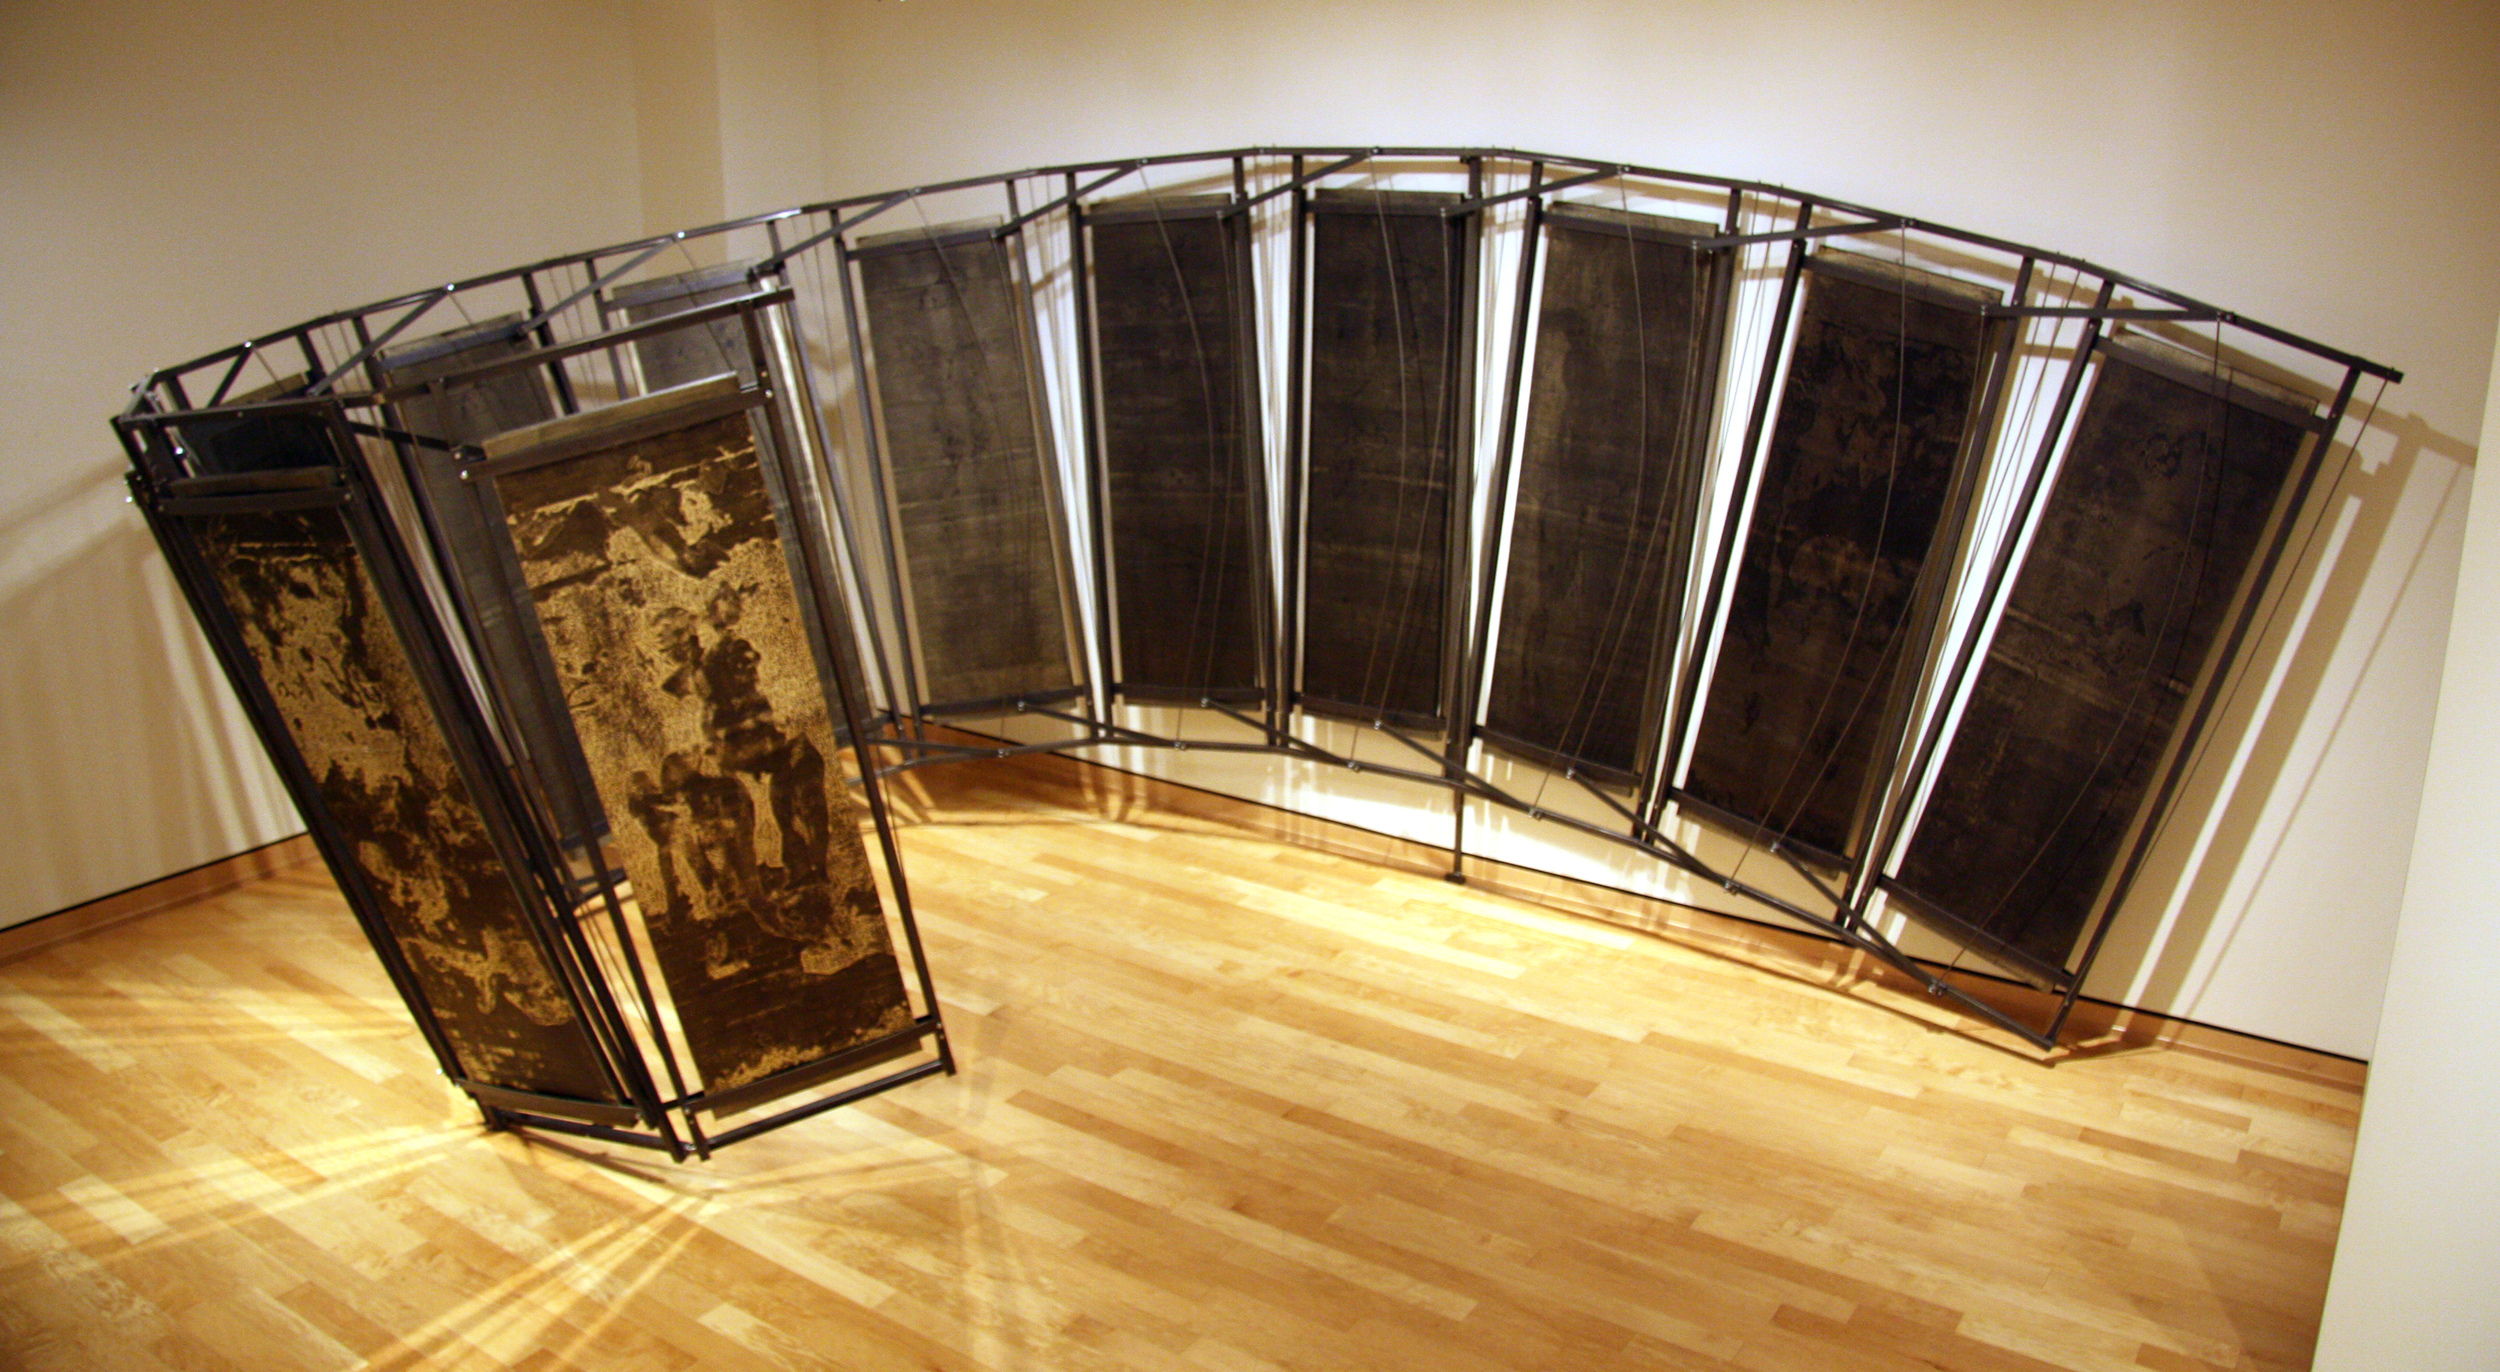 """Radius    twenty-four monoprints, mounted on twelve wooden panels, assembled in twelve connected steel structures monoprints; ink, paper and metallic foil.   sculpture; wood and stee 22' x 15' x 9.5'   (264"""" x 180"""" x 114"""" 2013  The steel and wooden panels of Hager's installation appear to reach out to encircle the viewer, offering an alternative space at odds with the larger room.   Pitched off-kilter, the regimented shapes ordered by industrial materials and taut cables offer yet another contrast.   On each dark panel, the soft glint of metallic foil makes visible organic shapes, reminiscent of an emerging human figure.   The stability that we expect of steel construction is undermined not only by the precarious angle but also by the faint figures that compete for the viewer's attention.   Despite our predisposition to trust structures that resemble engineered works, we approach this large work with caution, preoccupied with the struggle of the forms against the framework, the framework against the wall.  Dr. Kelly Watt, Assistant Professor of Art History Washburn University"""